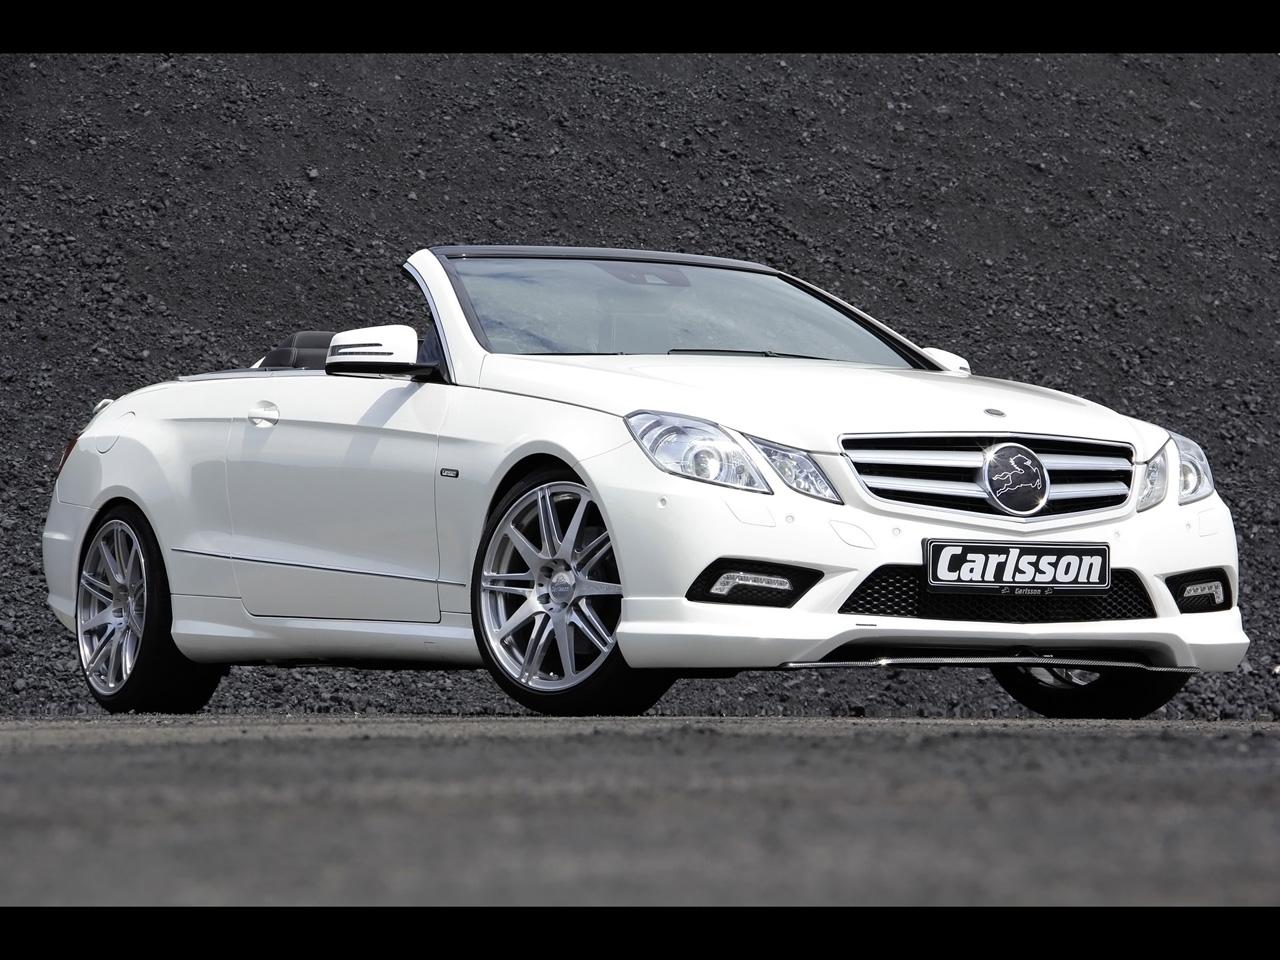 2011 carlsson mercedes benz e 350 cdi pictures beautiful for Mercedes benz e350 2011